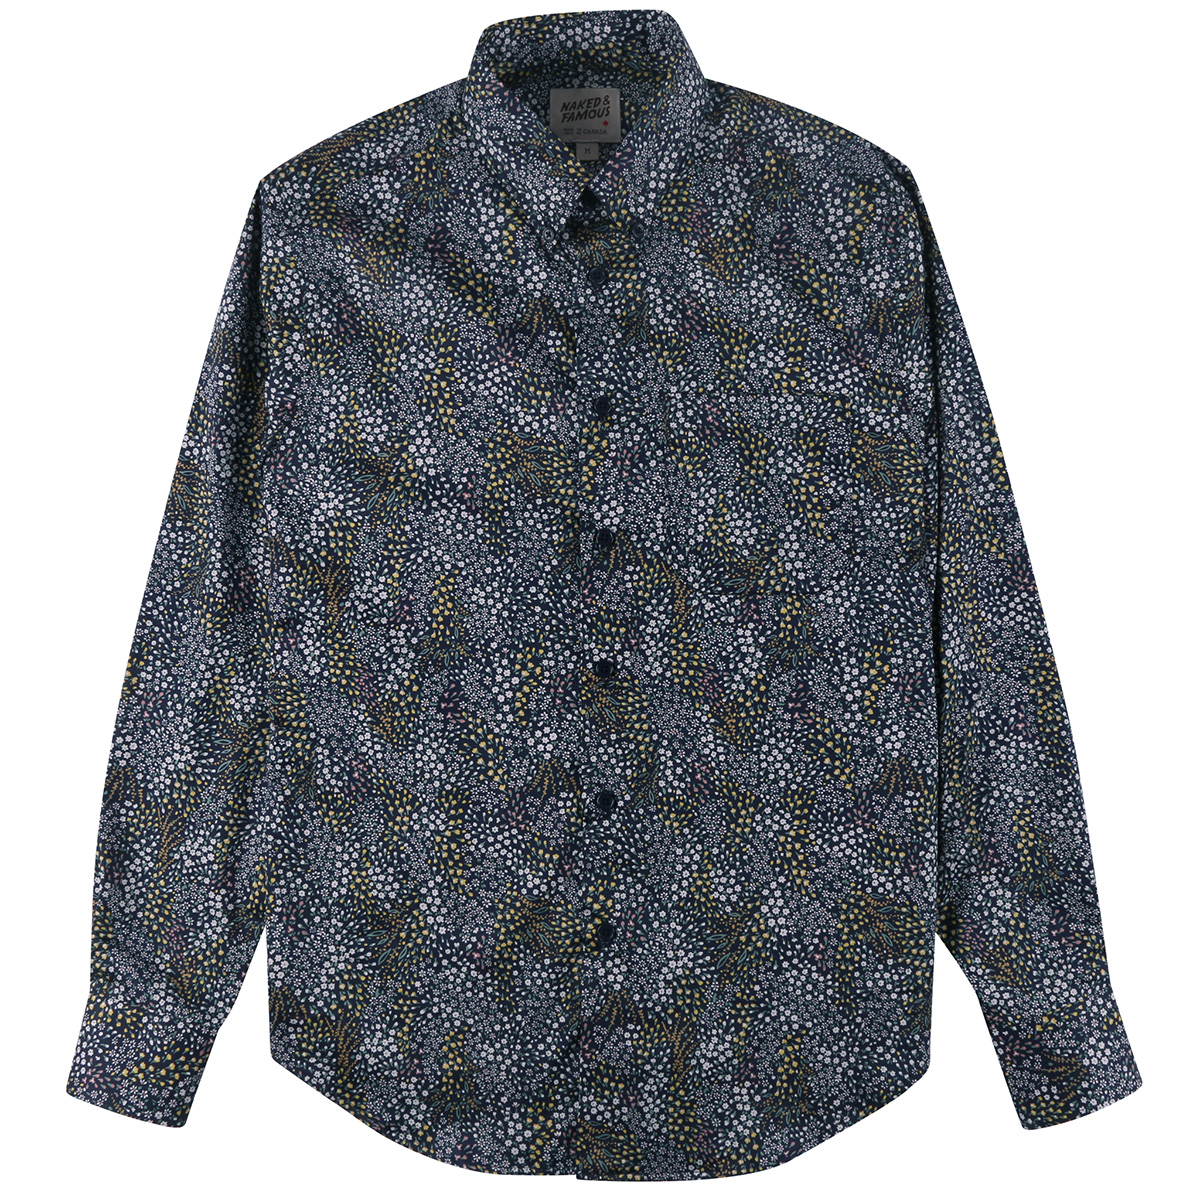 ALLOVER FLOWERS - NAVY - Easy Shirt